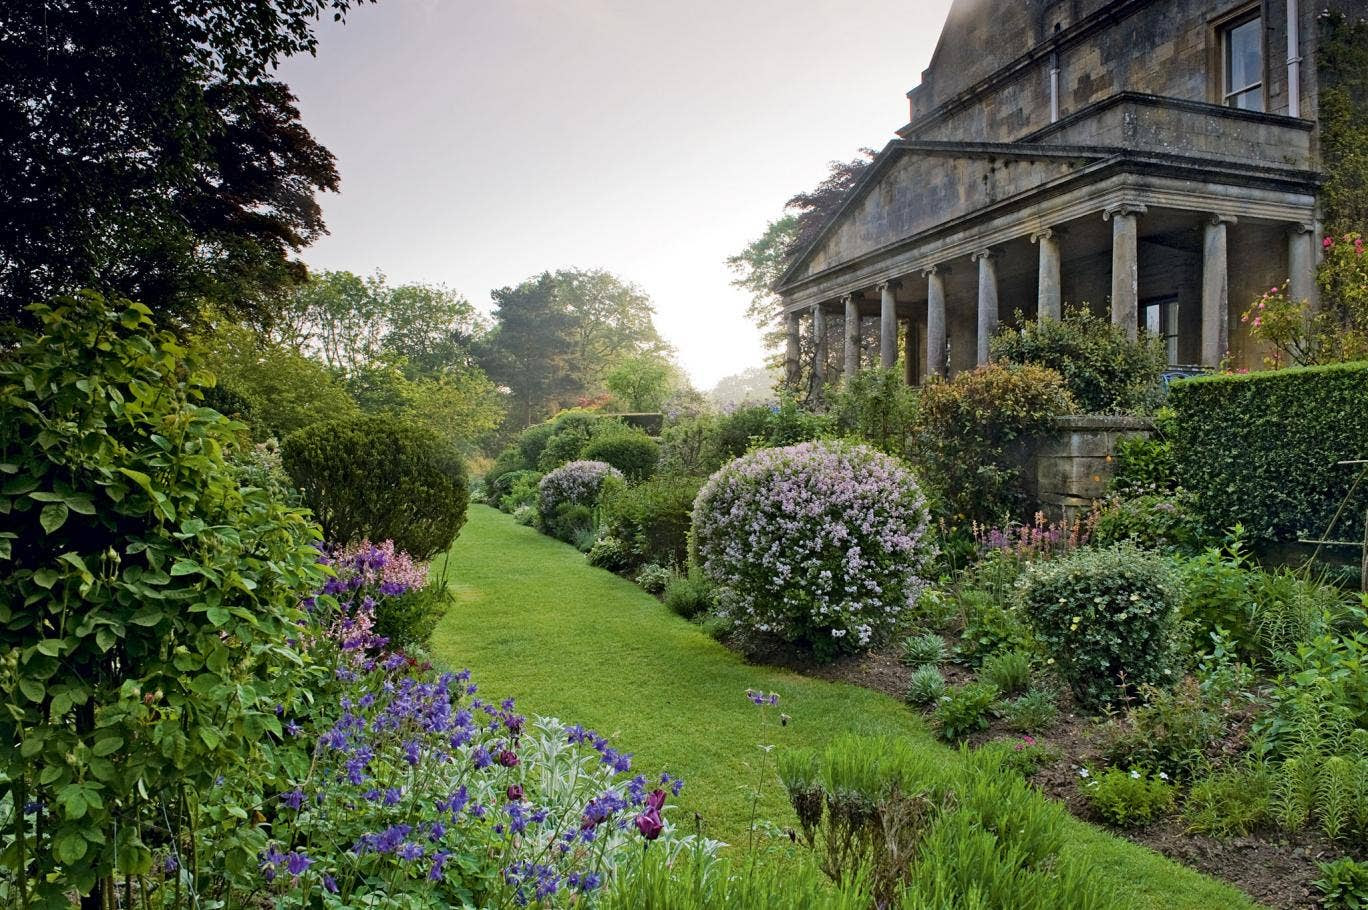 Kiftsgate Court Gardens in Chipping Campden has been created since 1920 and over three generations by Heather Muir, Diany Binny and Anne Chambers. It is open to the public, April to September